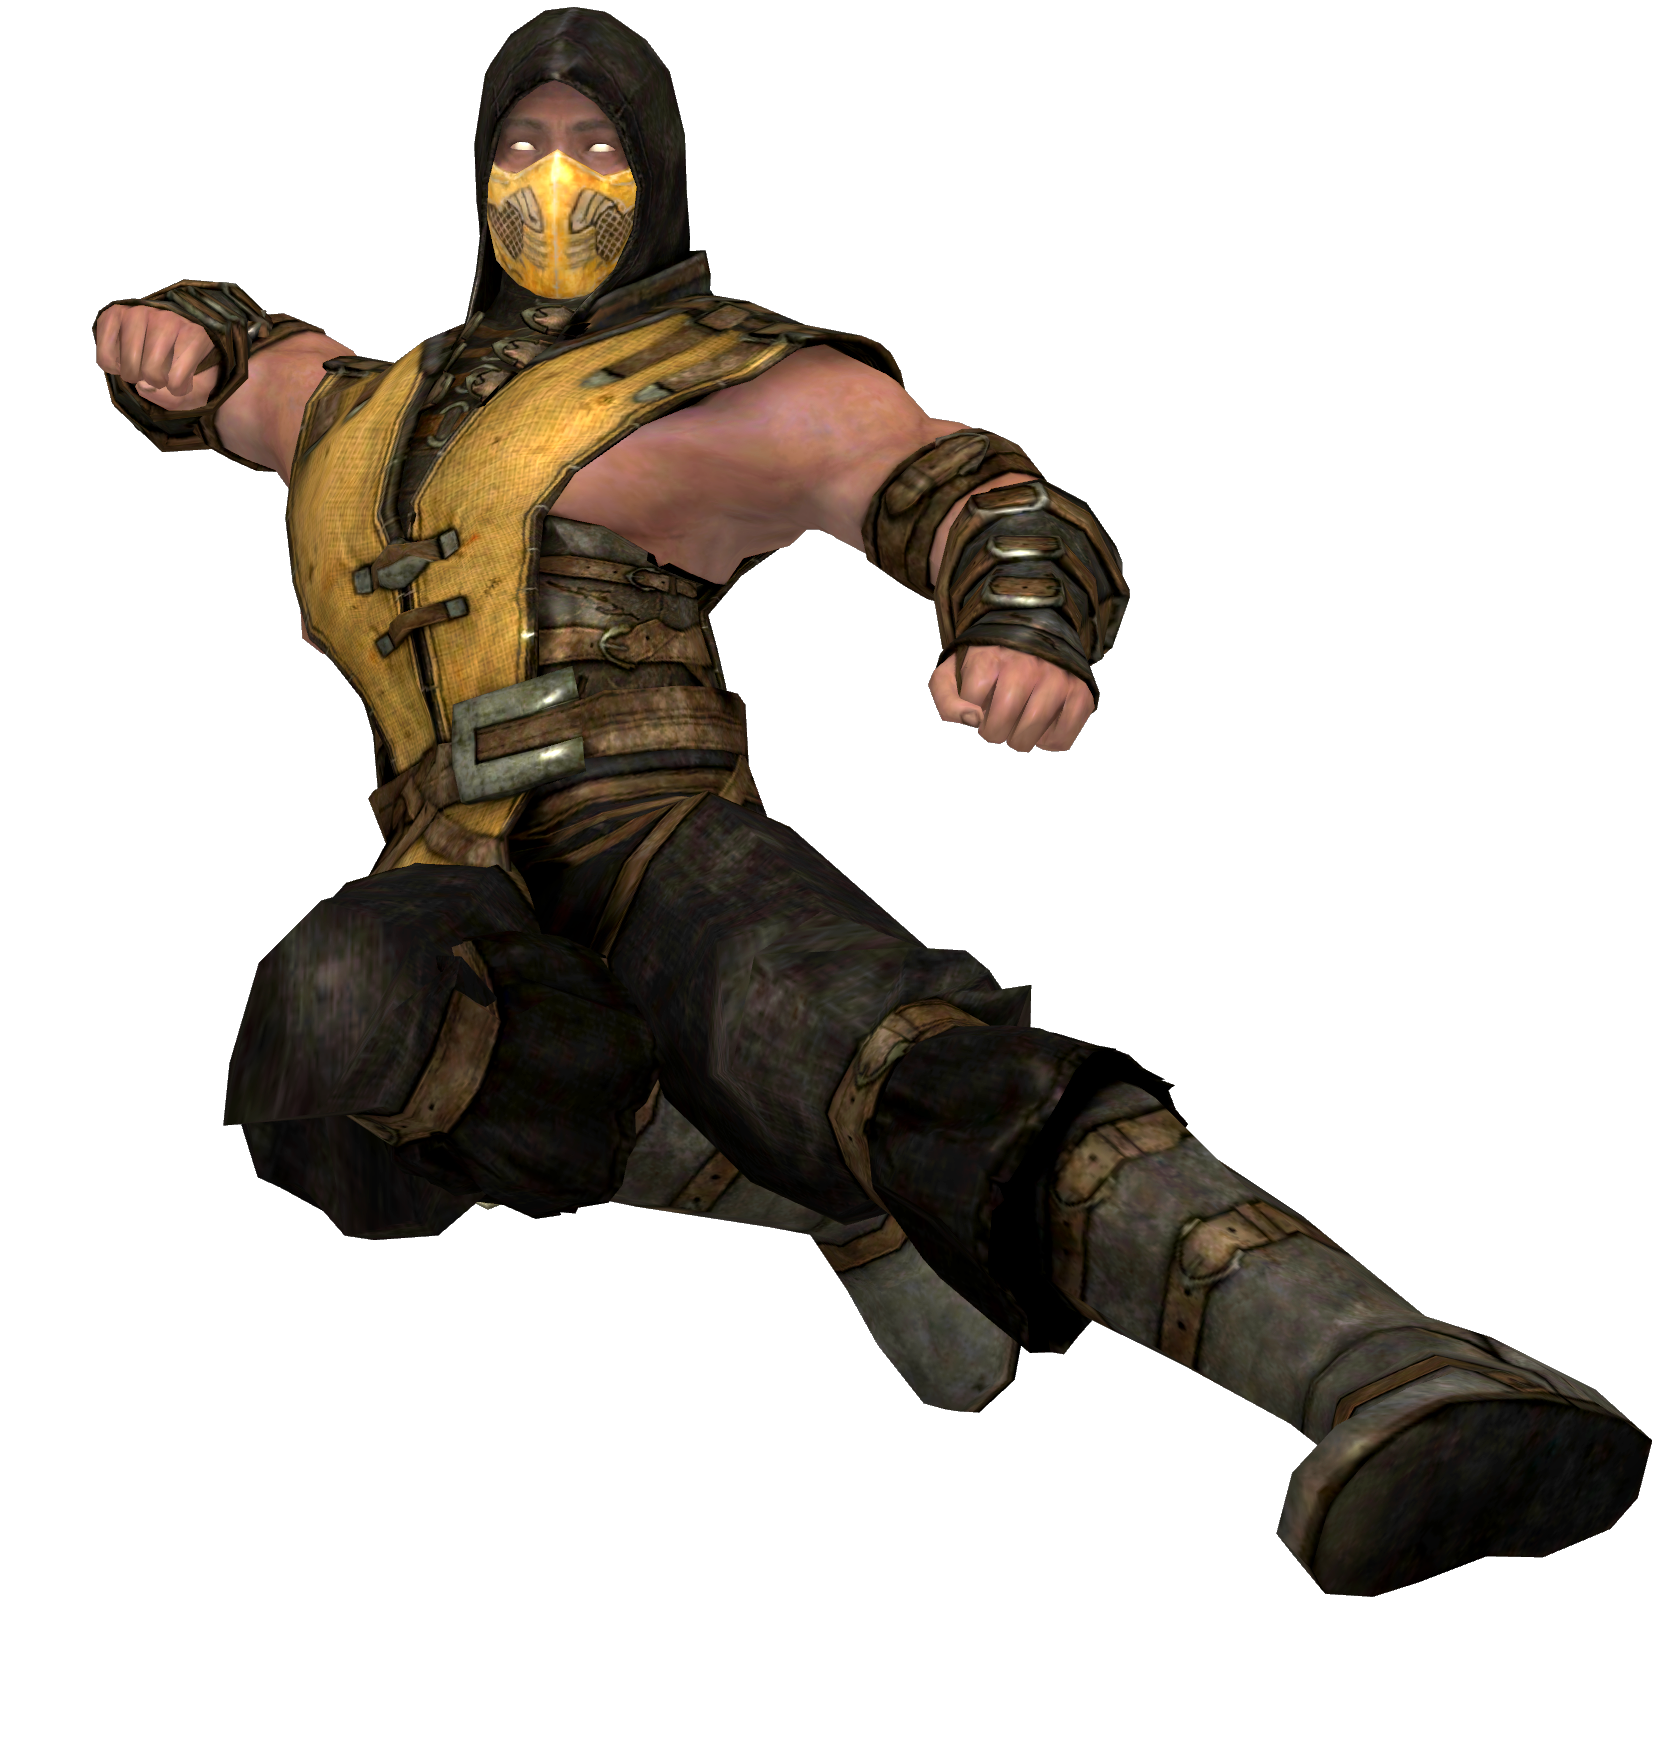 Scorpion mkx png. Image playstation all stars